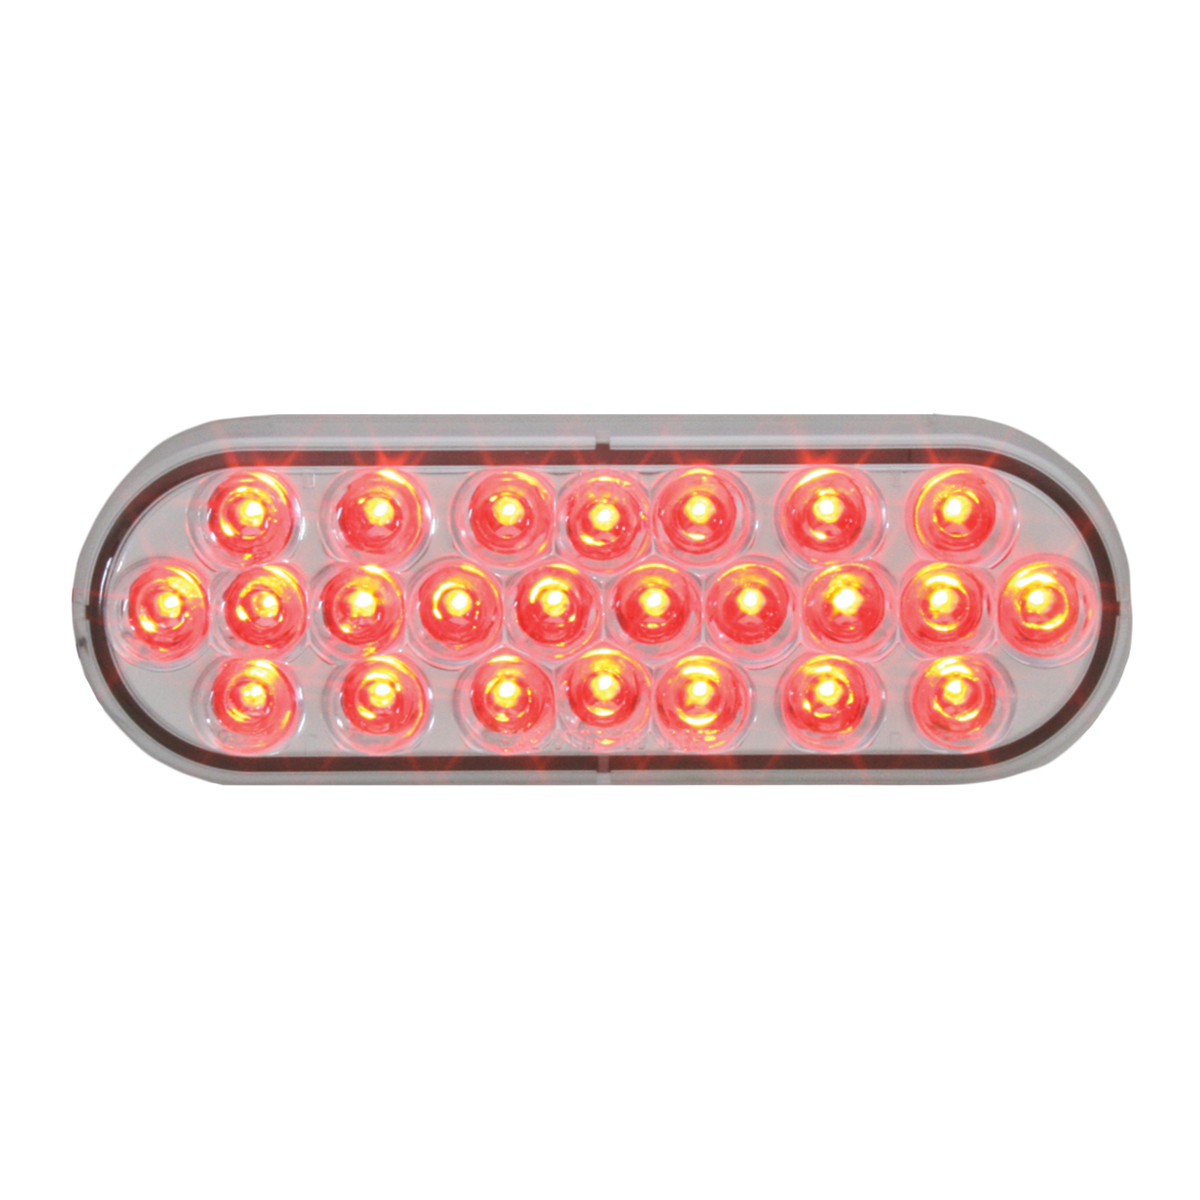 #78234 - Oval Sealed Pearl LED Flat Red/Clear Light - Slanted